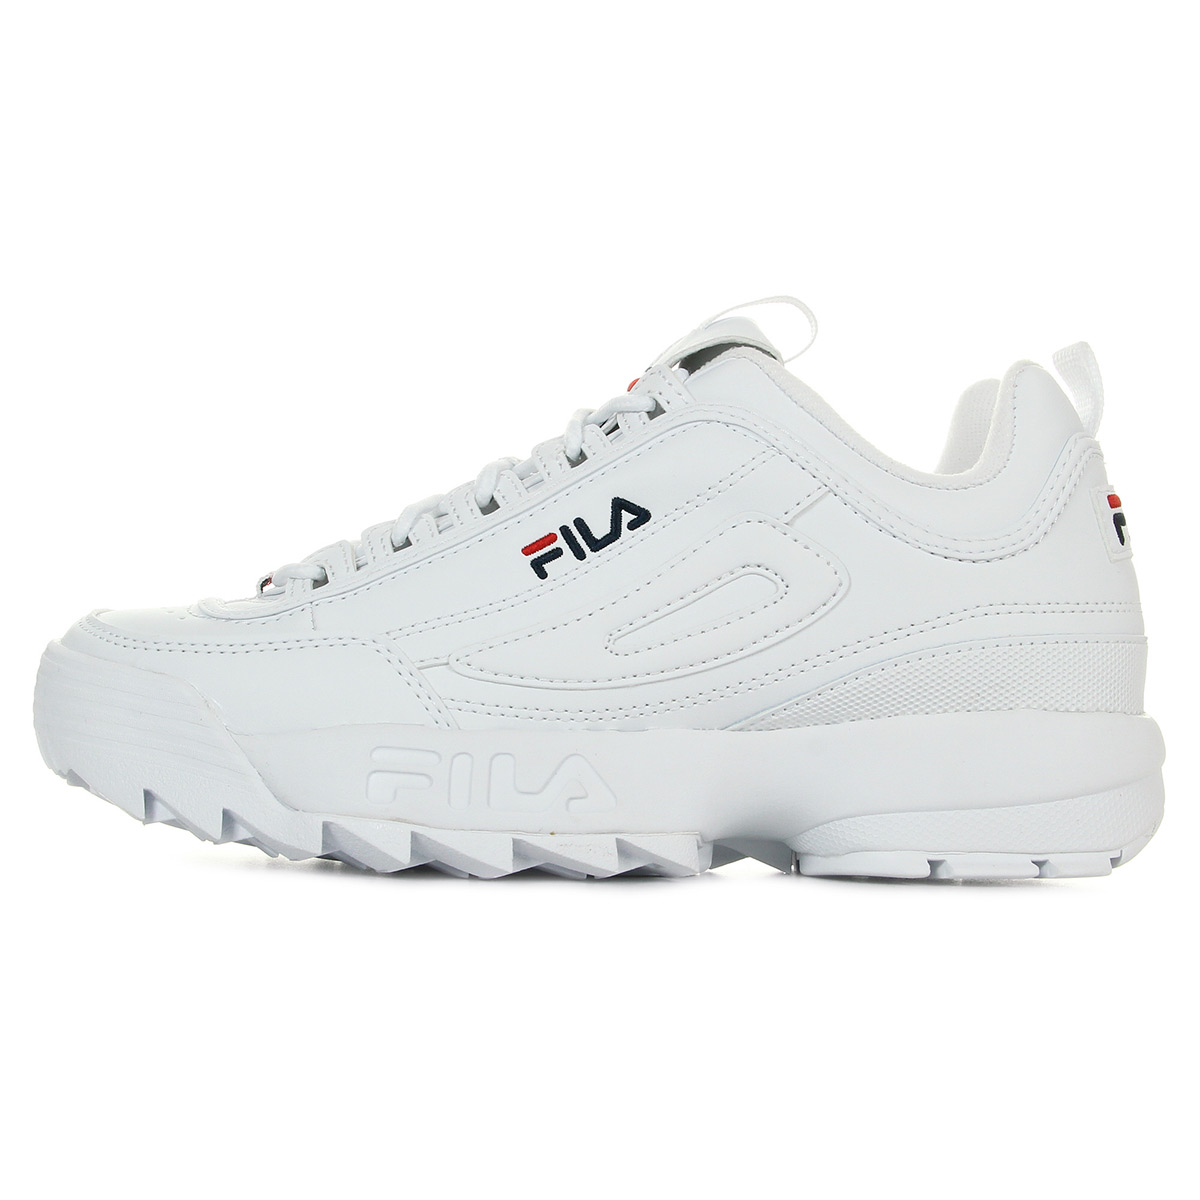 Fila 10102621fg Homme Mode Baskets Disruptor Low qvnOrqw8R